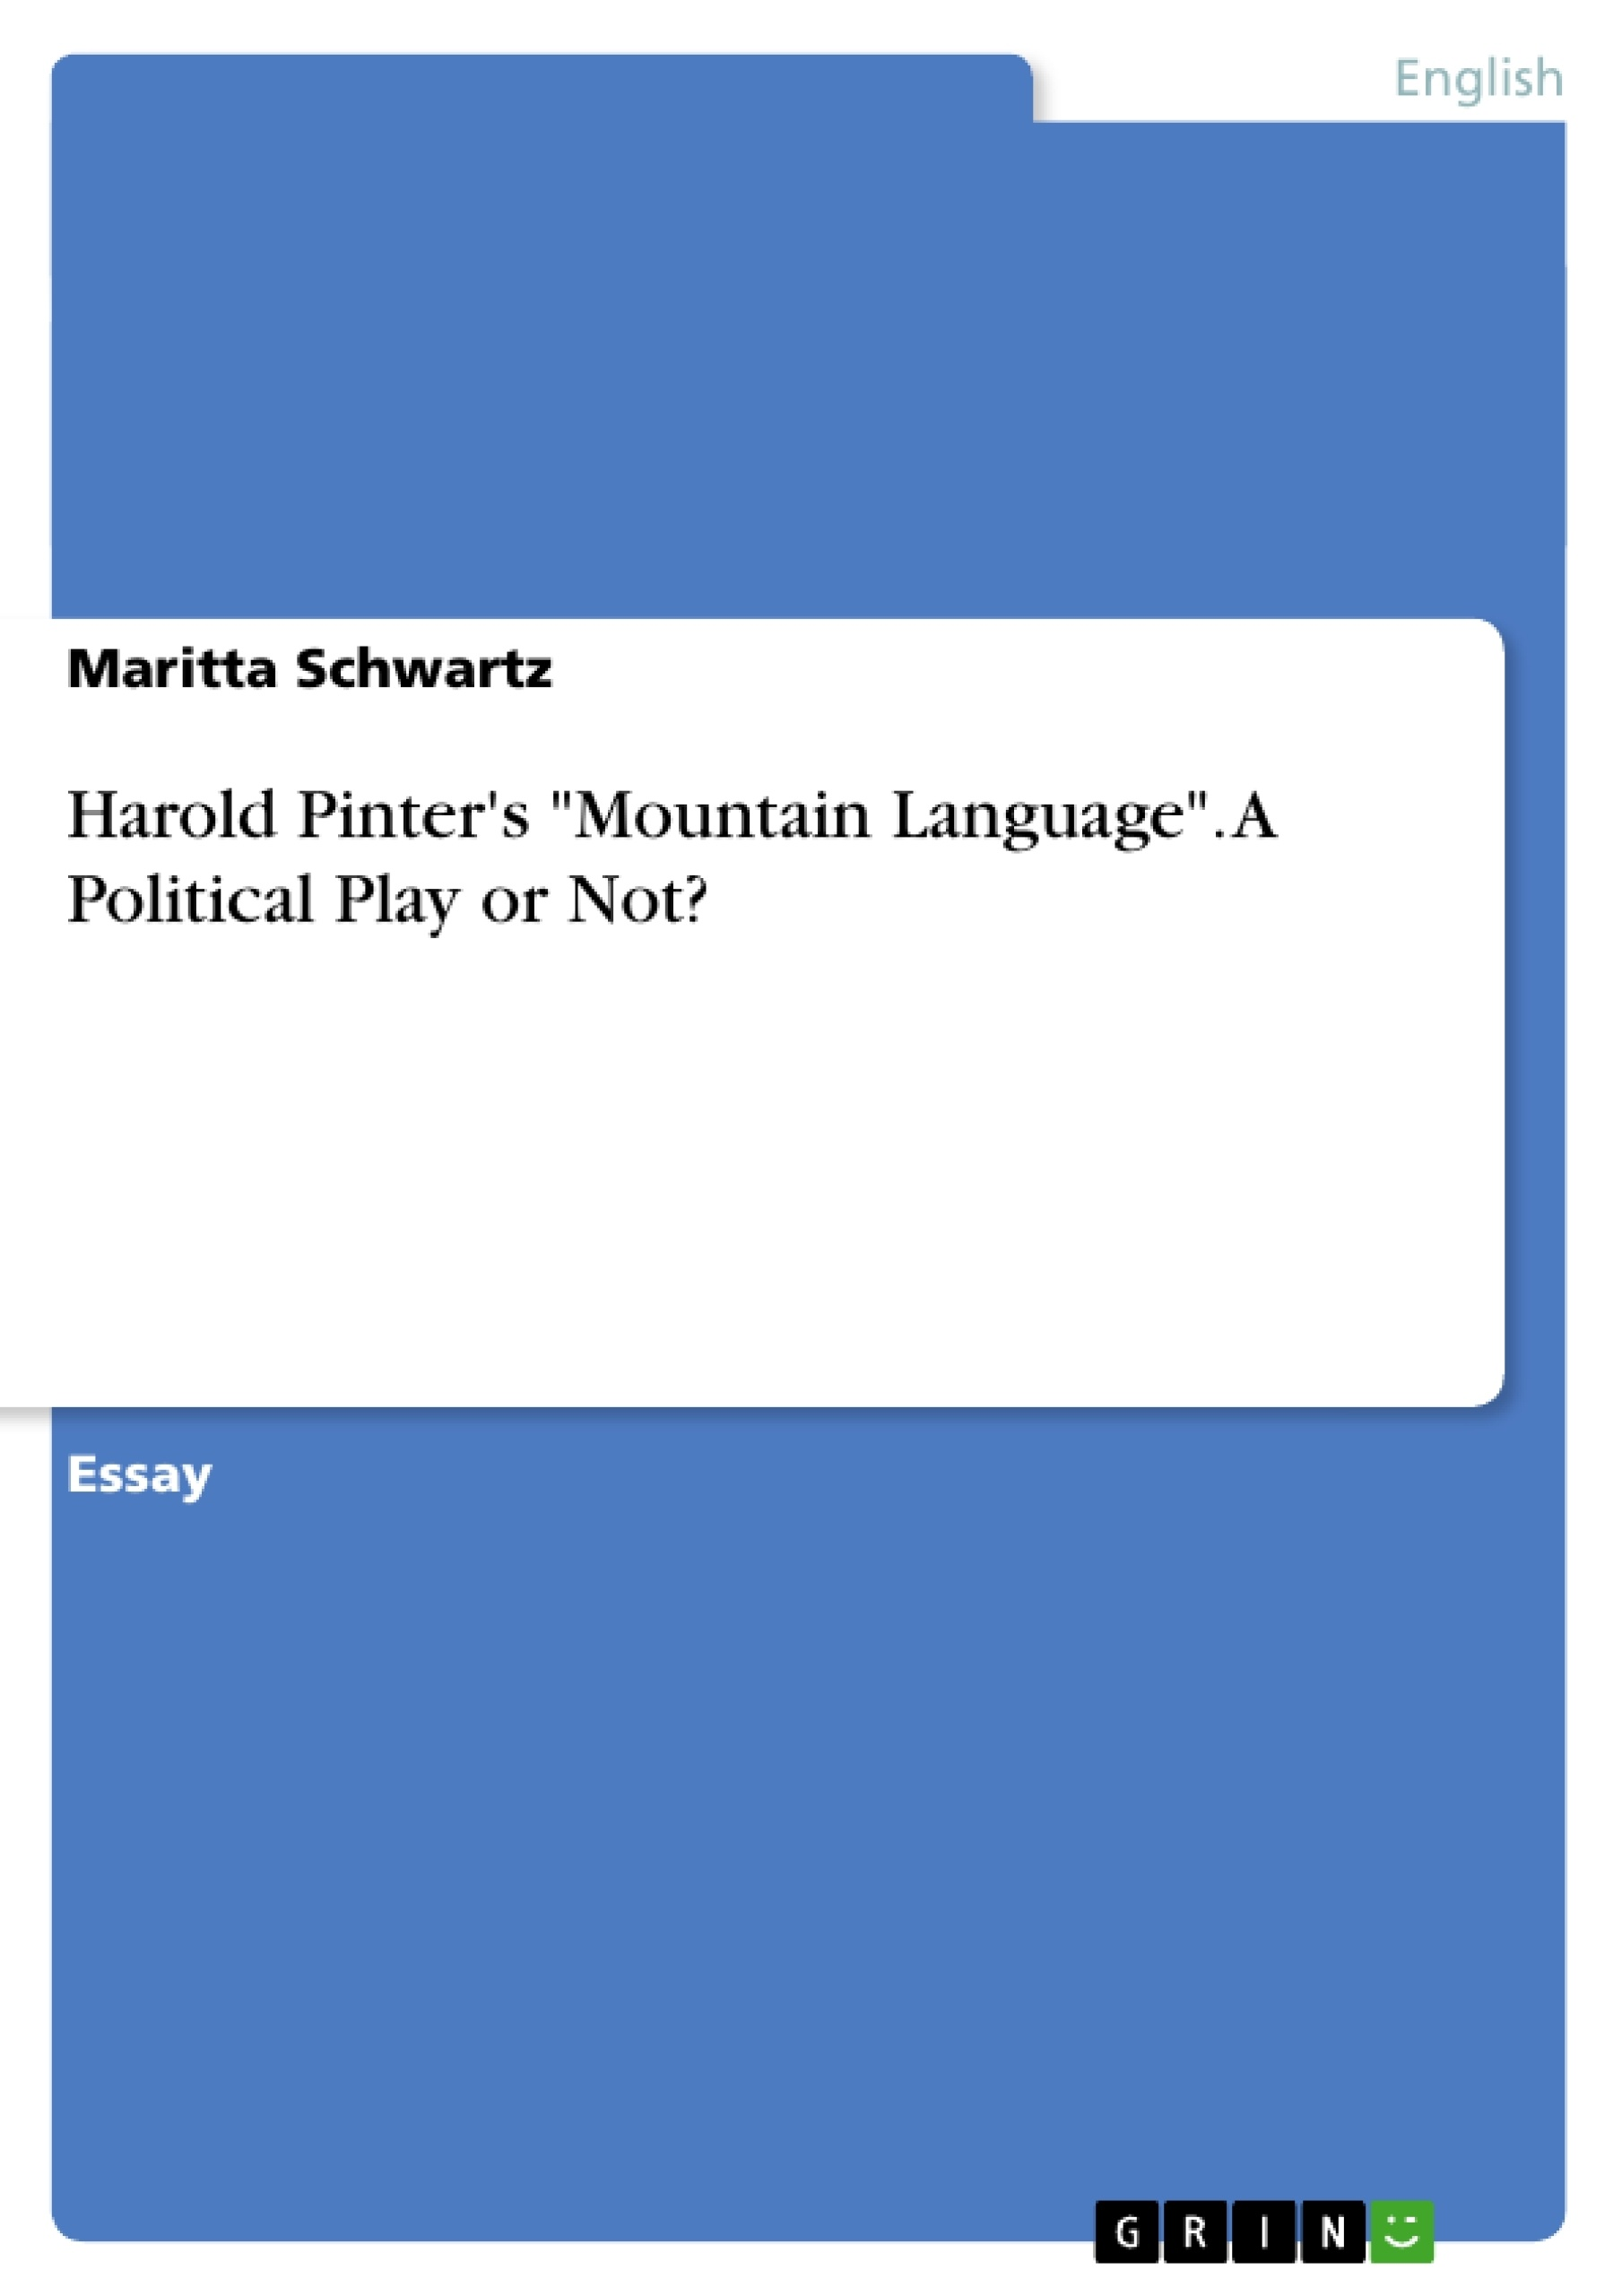 harold pinter s mountain language a political play or not harold pinter s mountain language a political play or not publish your master s thesis bachelor s thesis essay or term paper